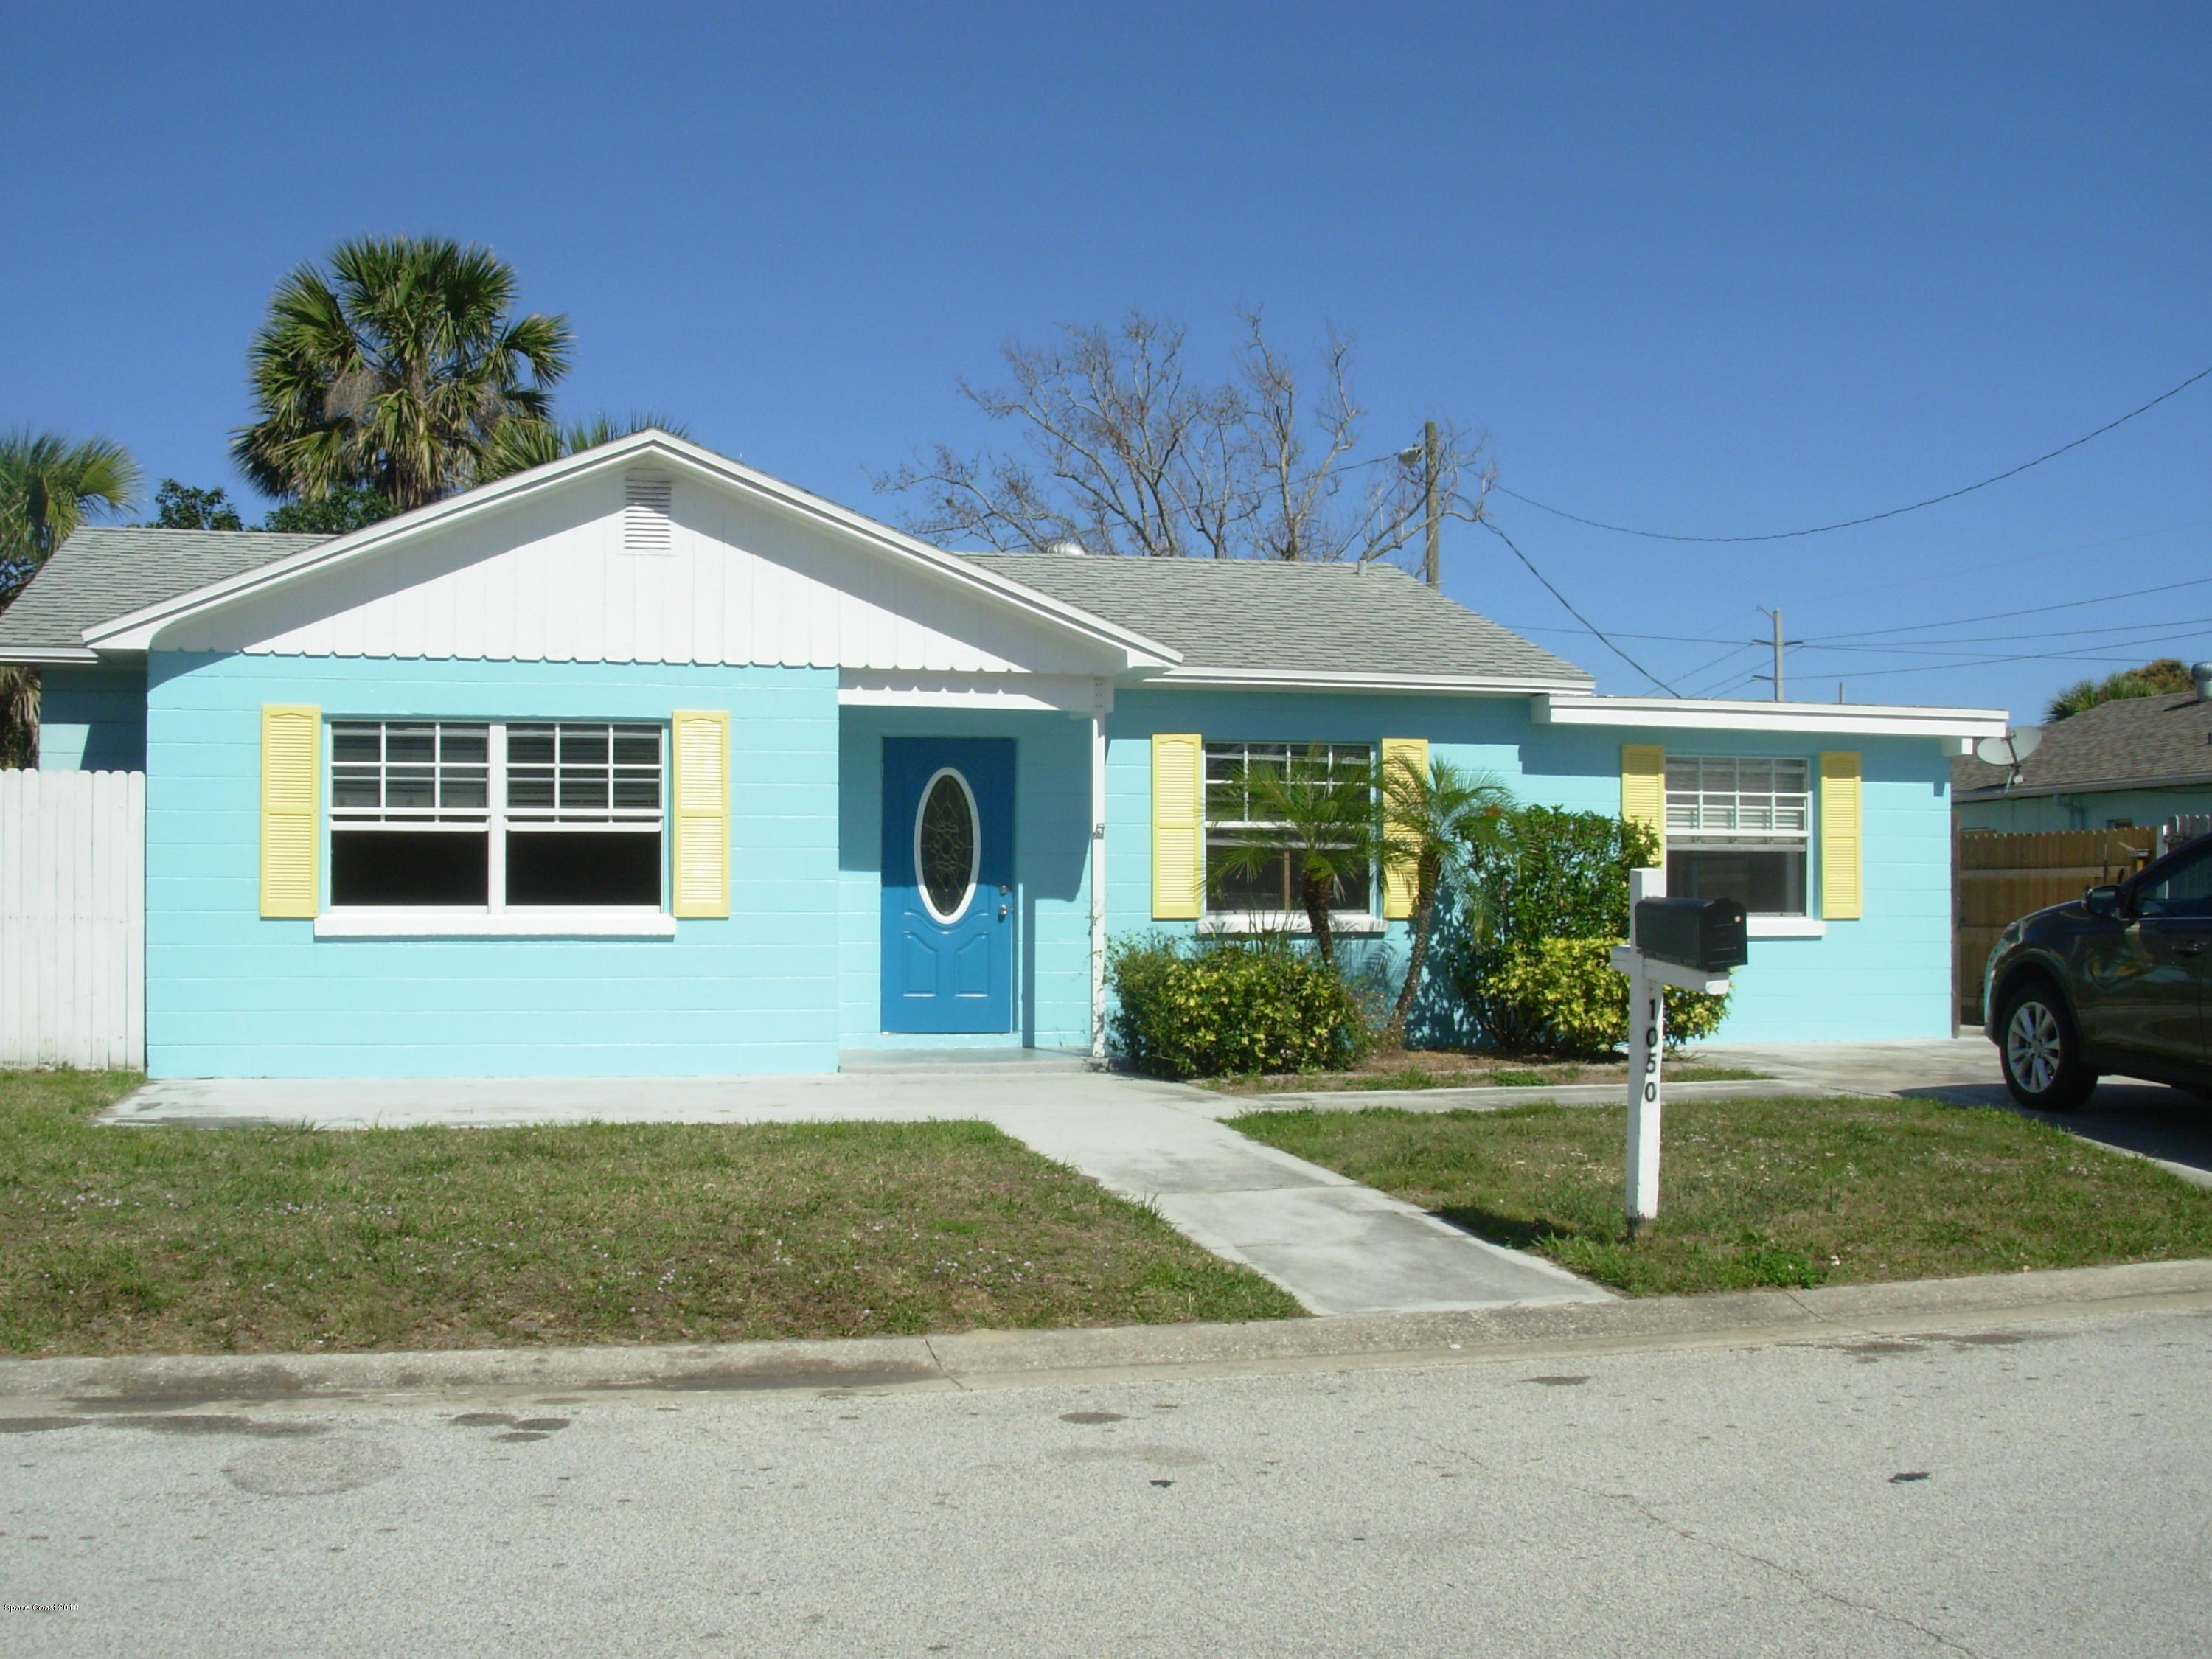 Single Family Home for Rent at 1050 Riverdale 1050 Riverdale Melbourne, Florida 32935 United States